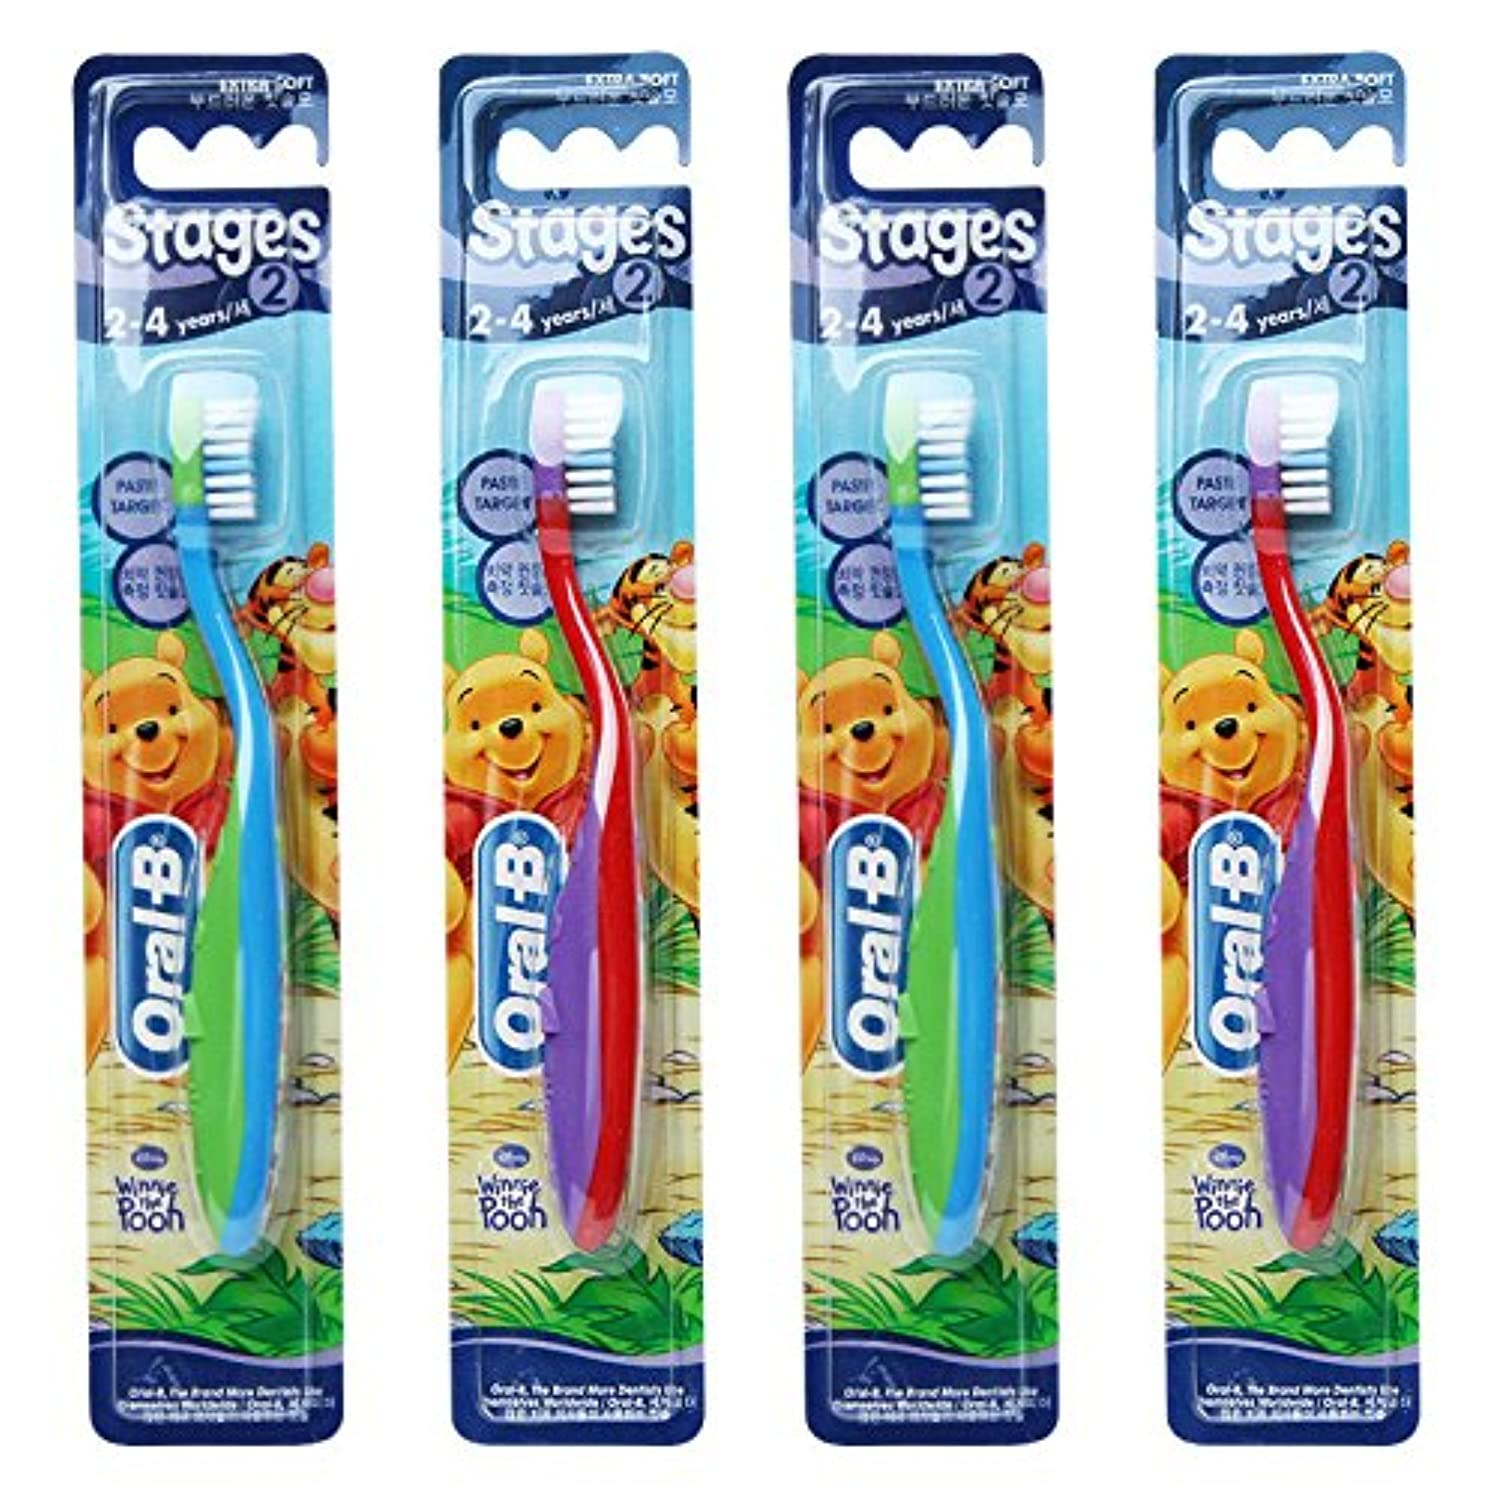 Oral-B Stages 2 Toothbrush 2 - 4 years 4 Pack /GENUINEと元の梱包 [並行輸入品]